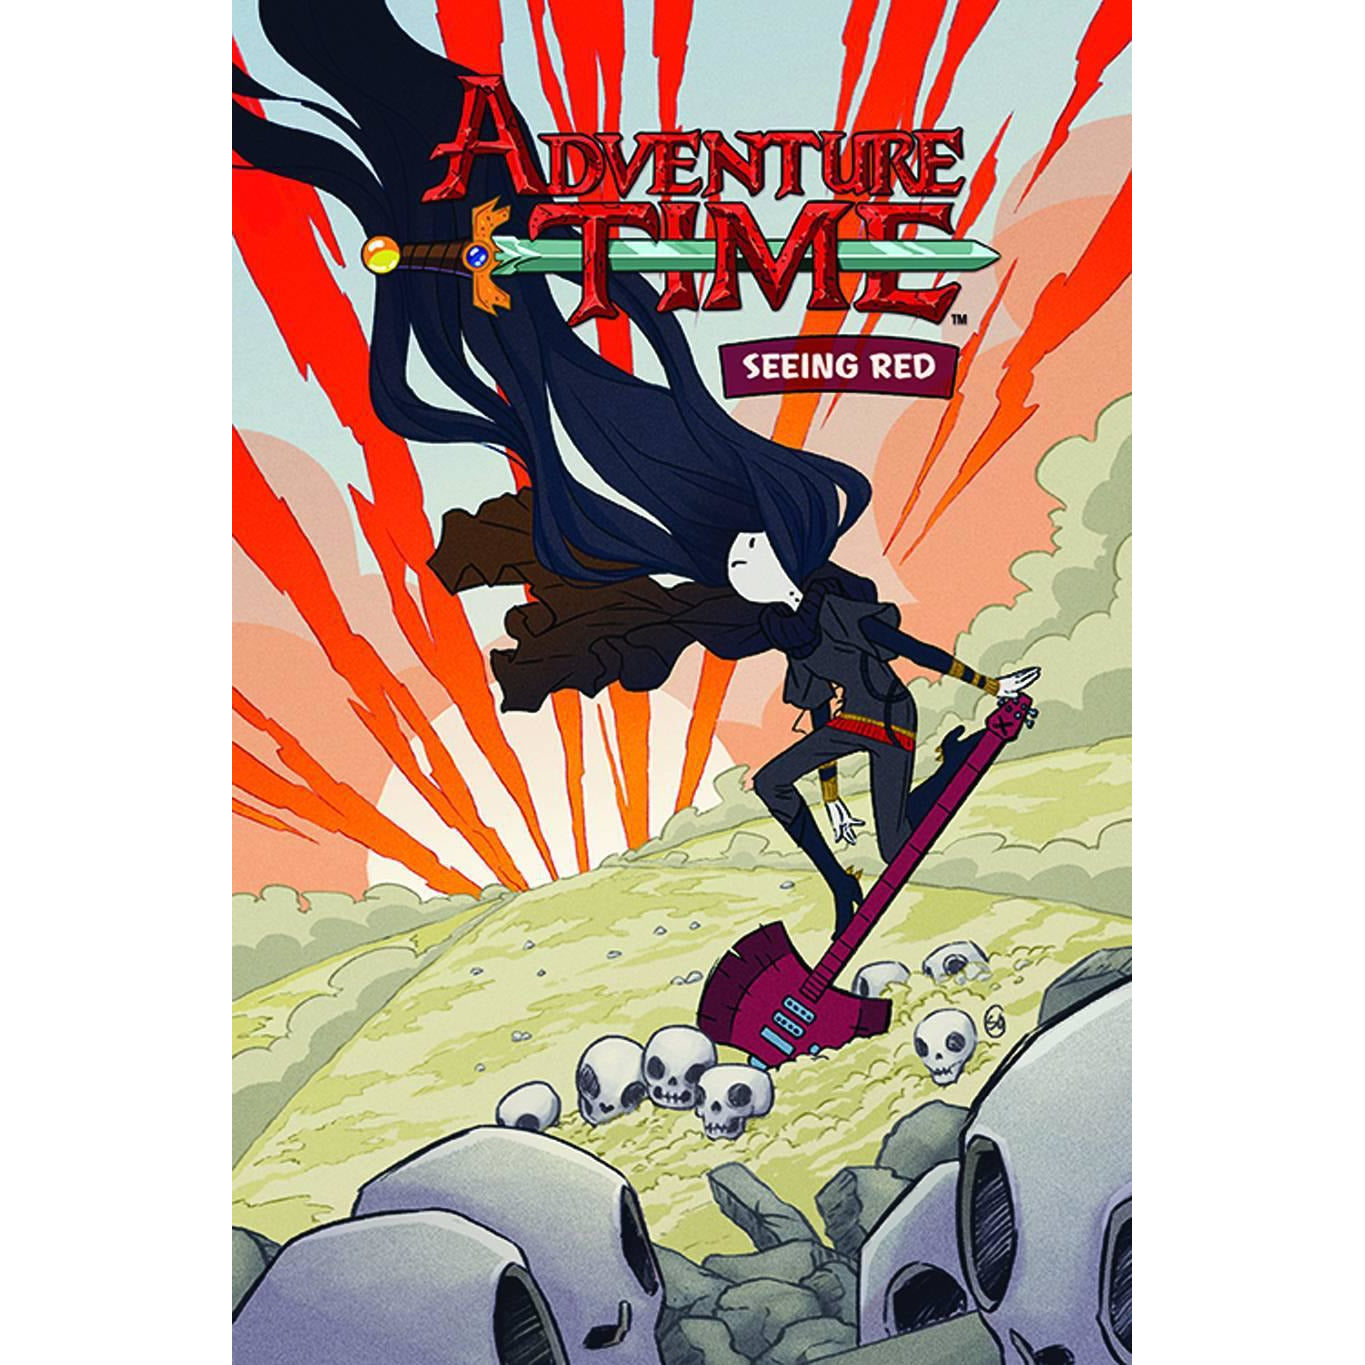 ADVENTURE TIME VOLUME 3: SEEING RED